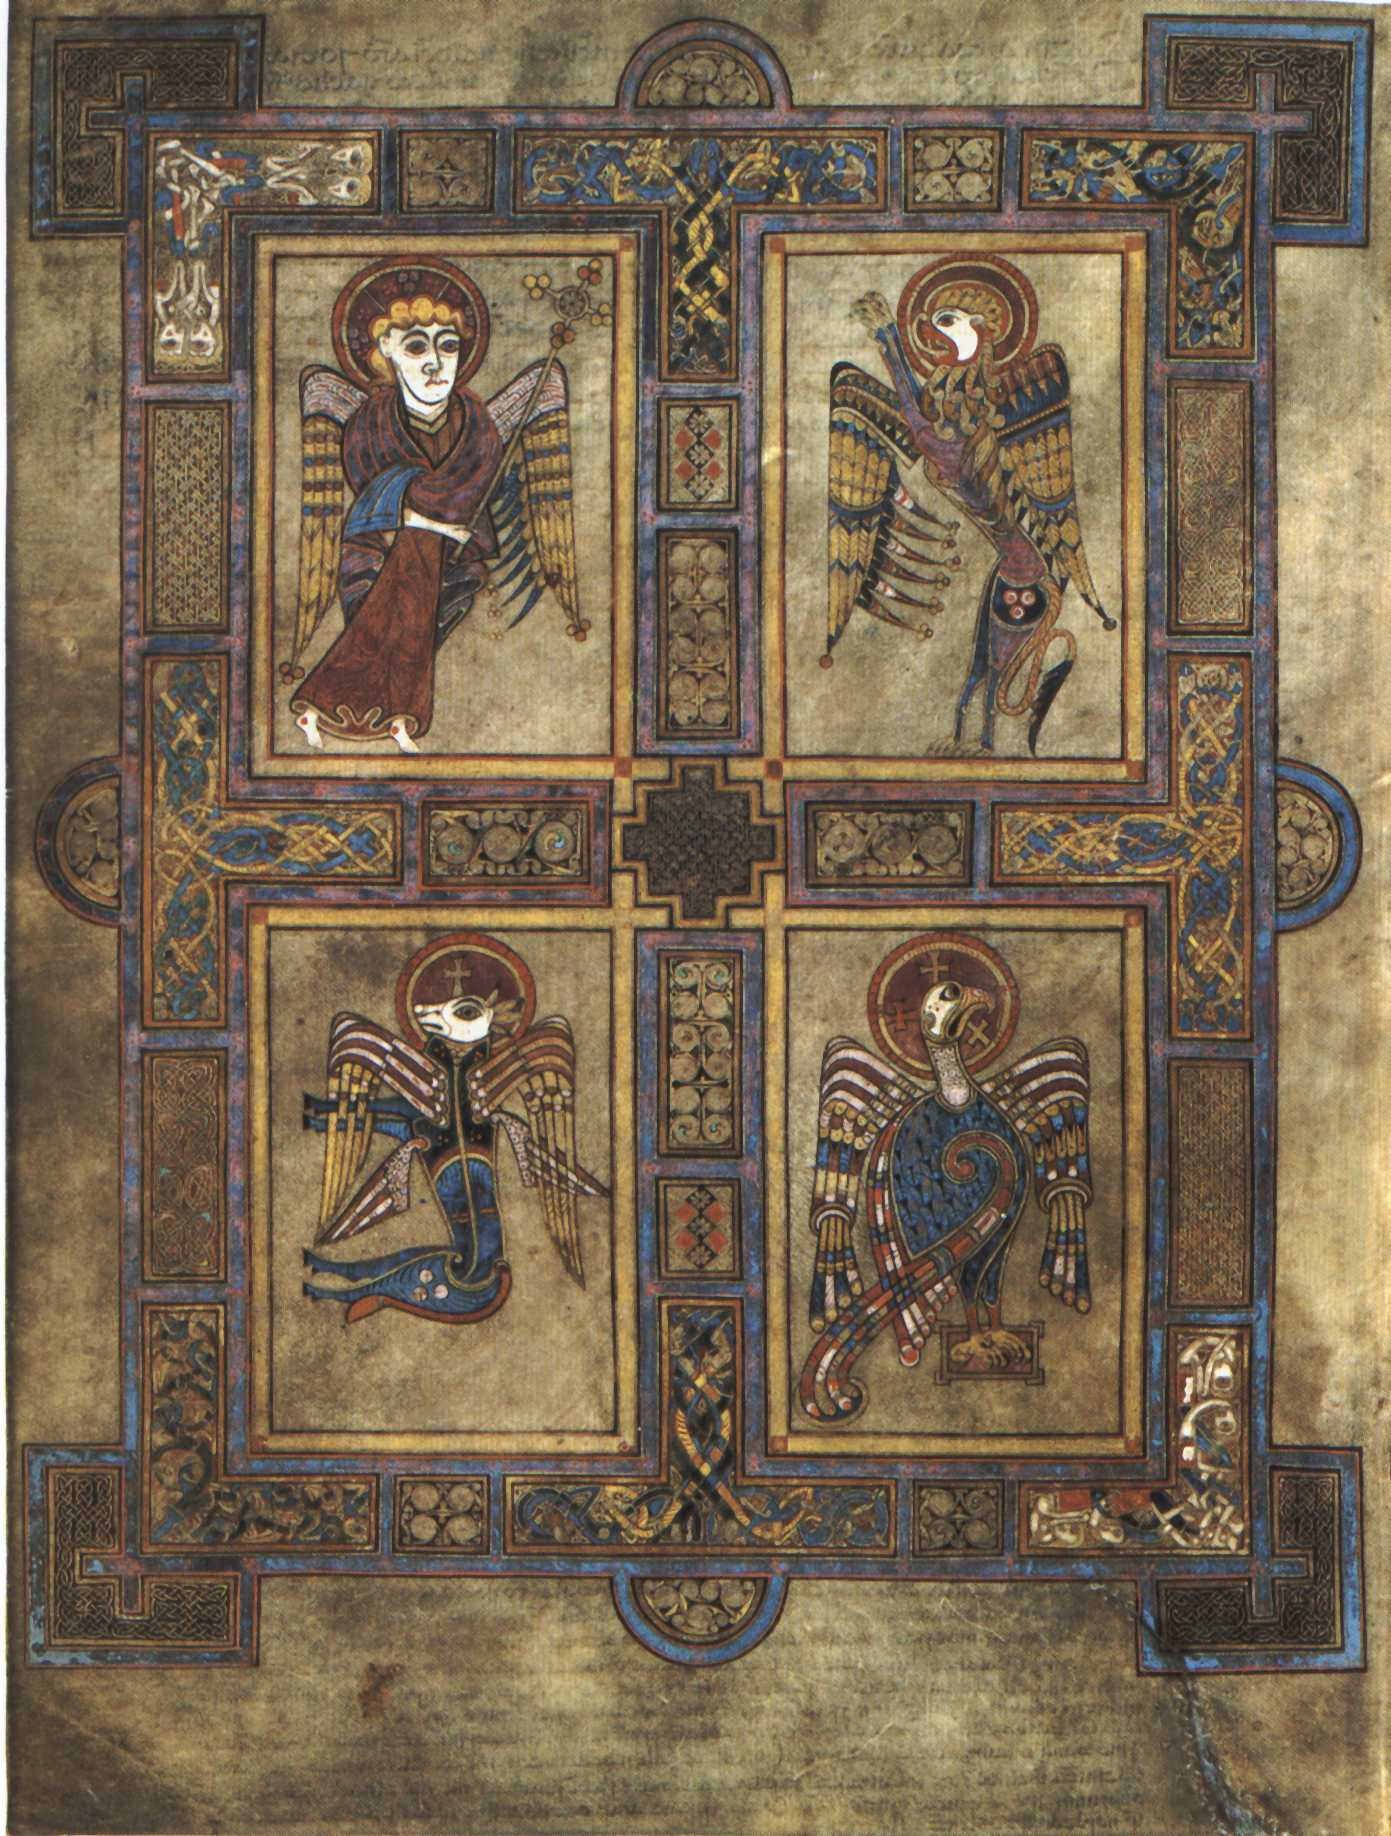 Symbols of the Four Evangelists from the Book of Kells